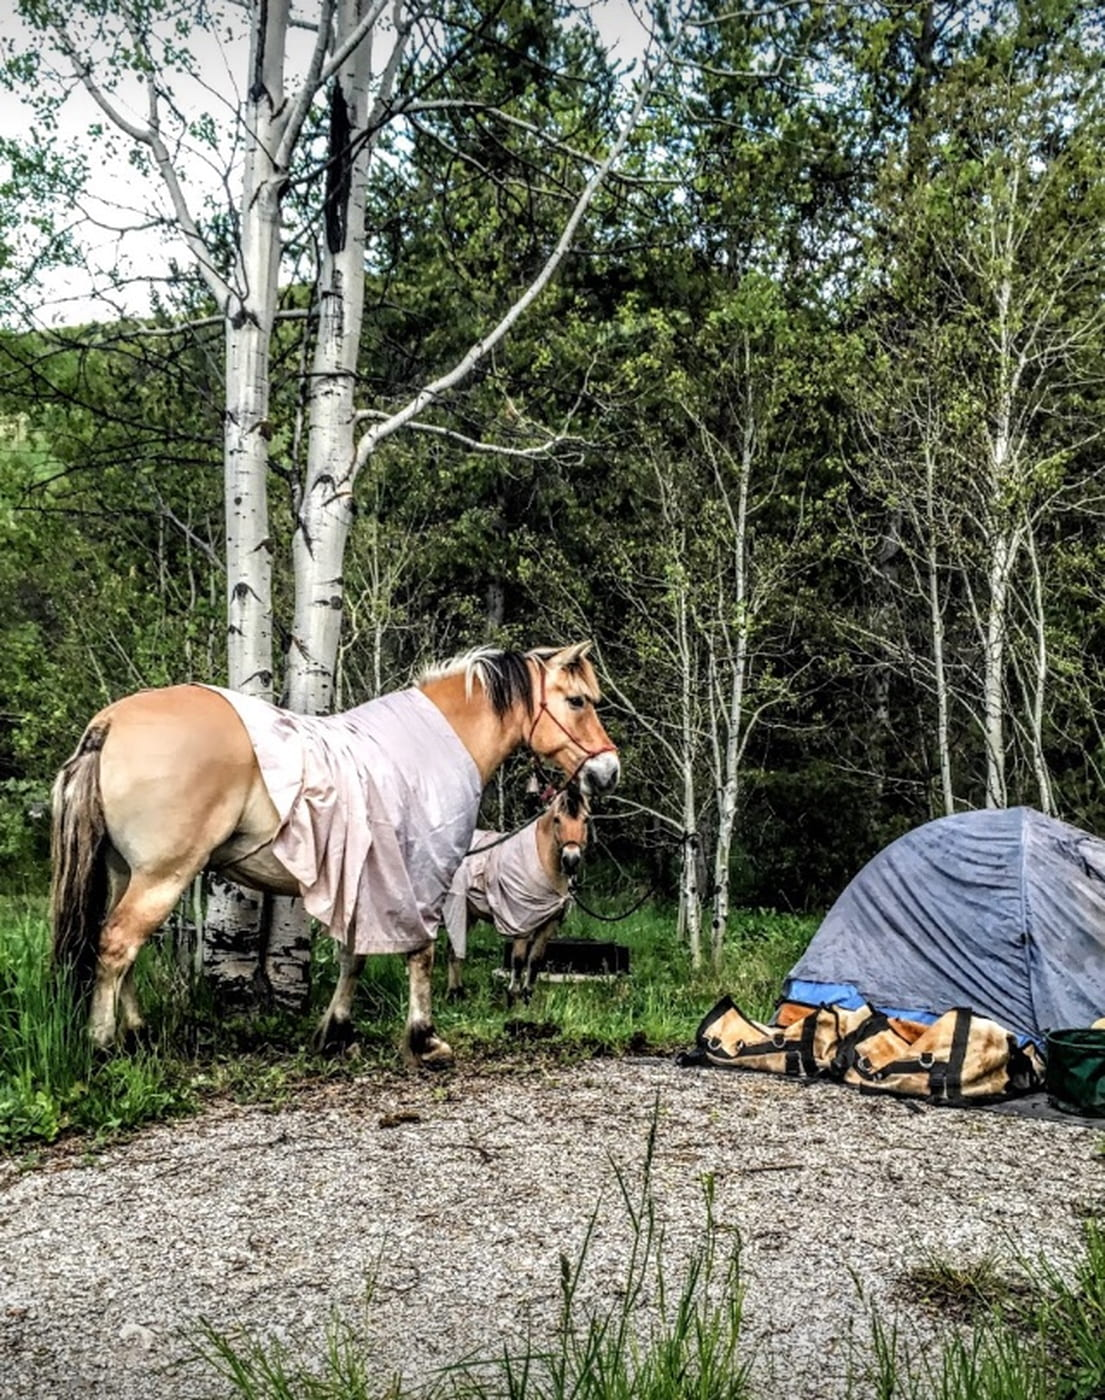 Haflinger horses in blankets tied up beside tents and gear.